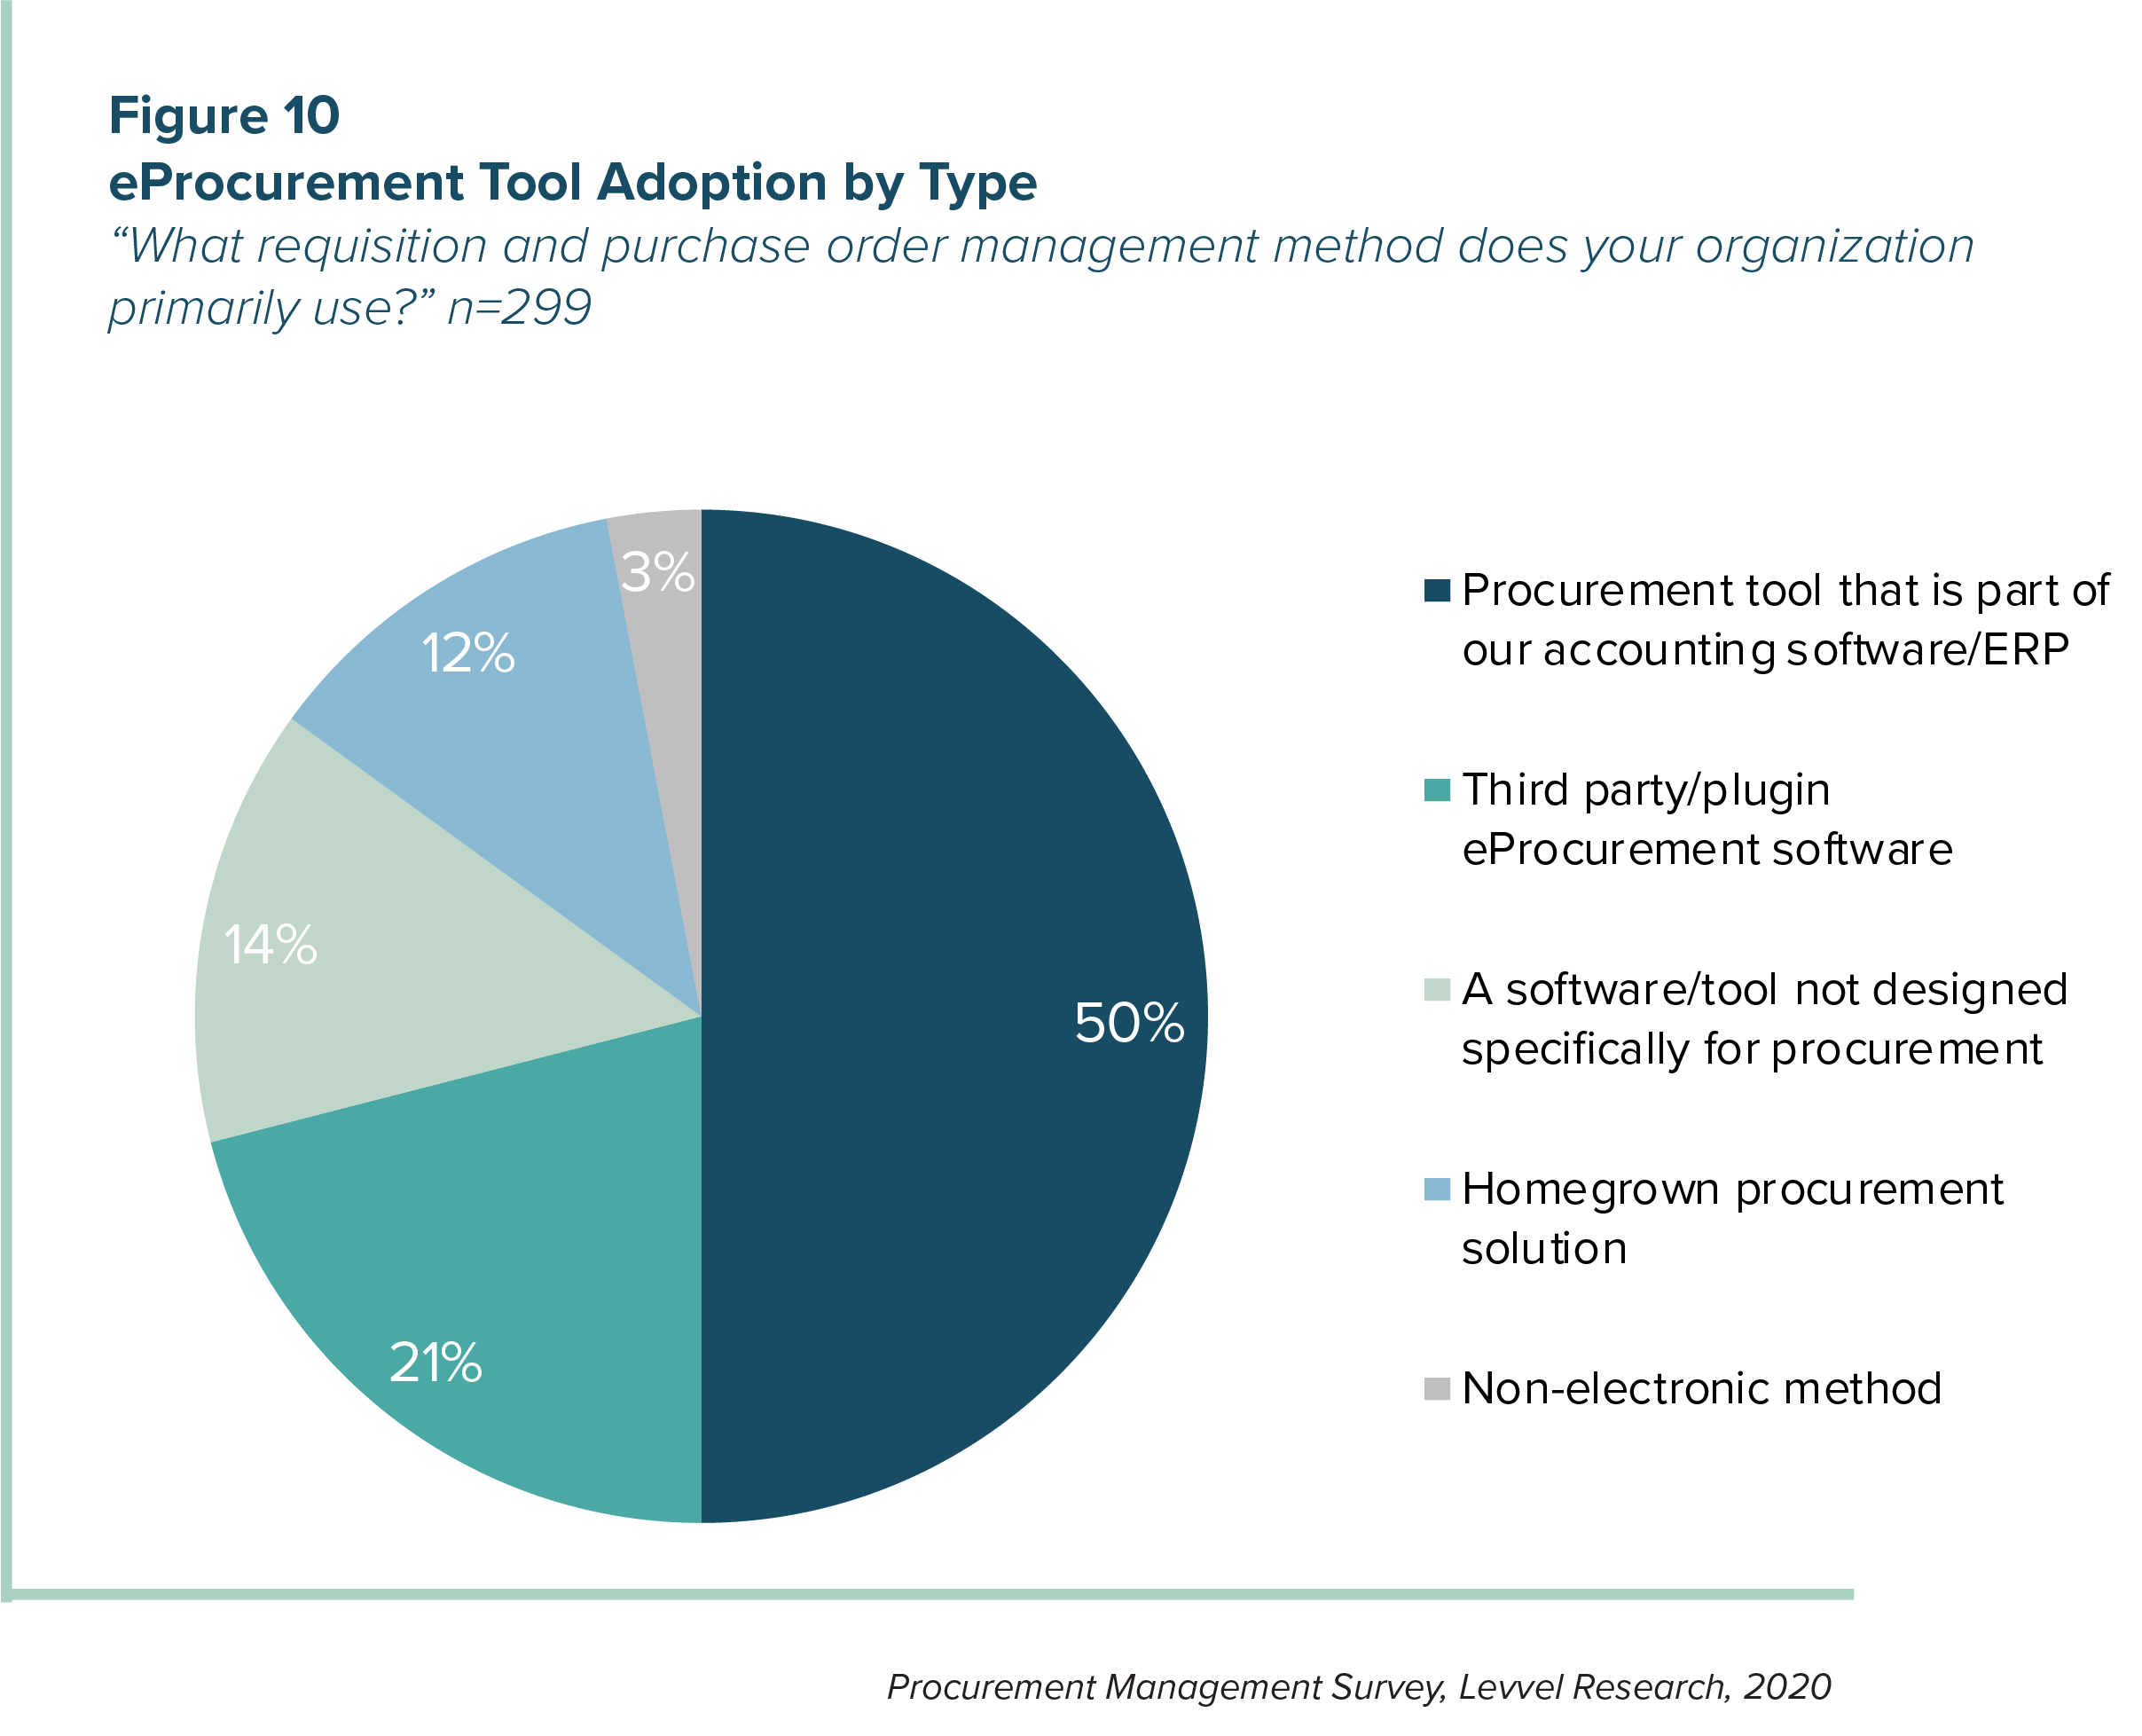 Figure 10 - eProcurement Tool Adoption by Type